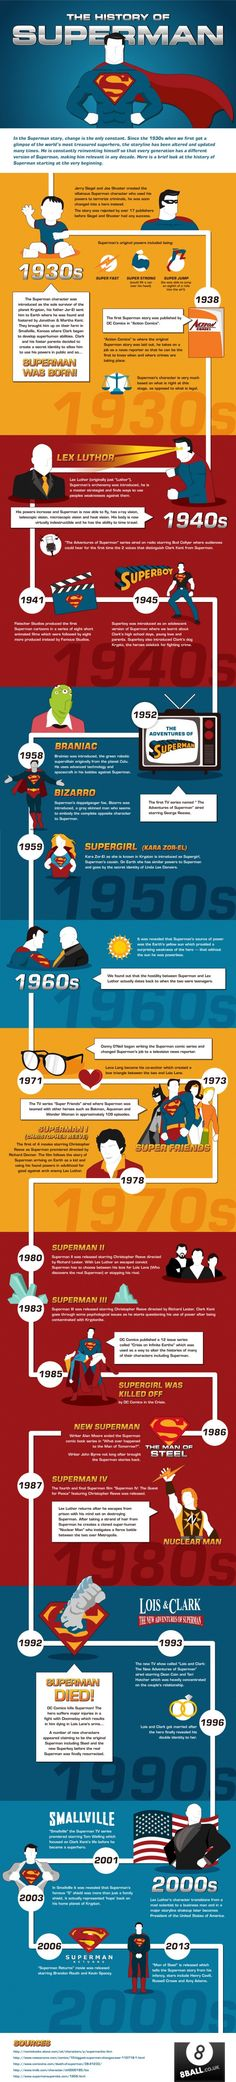 The History of Superman [Infographic]